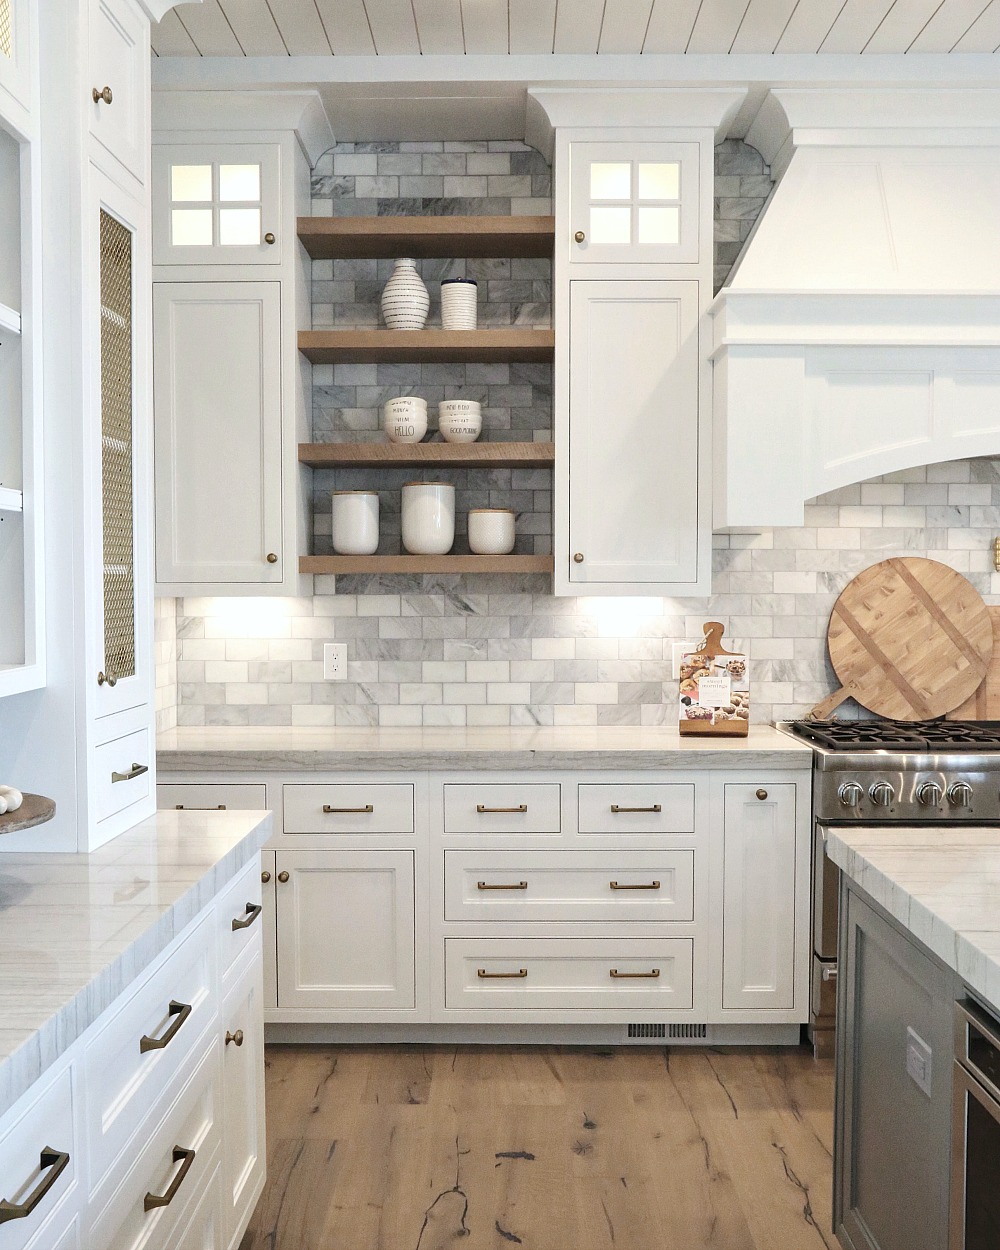 Our Best Tips For Staining Cabinets Or Re Staining Kitchen Cabinets Decor Farmhouse Kitchen Cabinets Rustic Farmhouse Kitchen